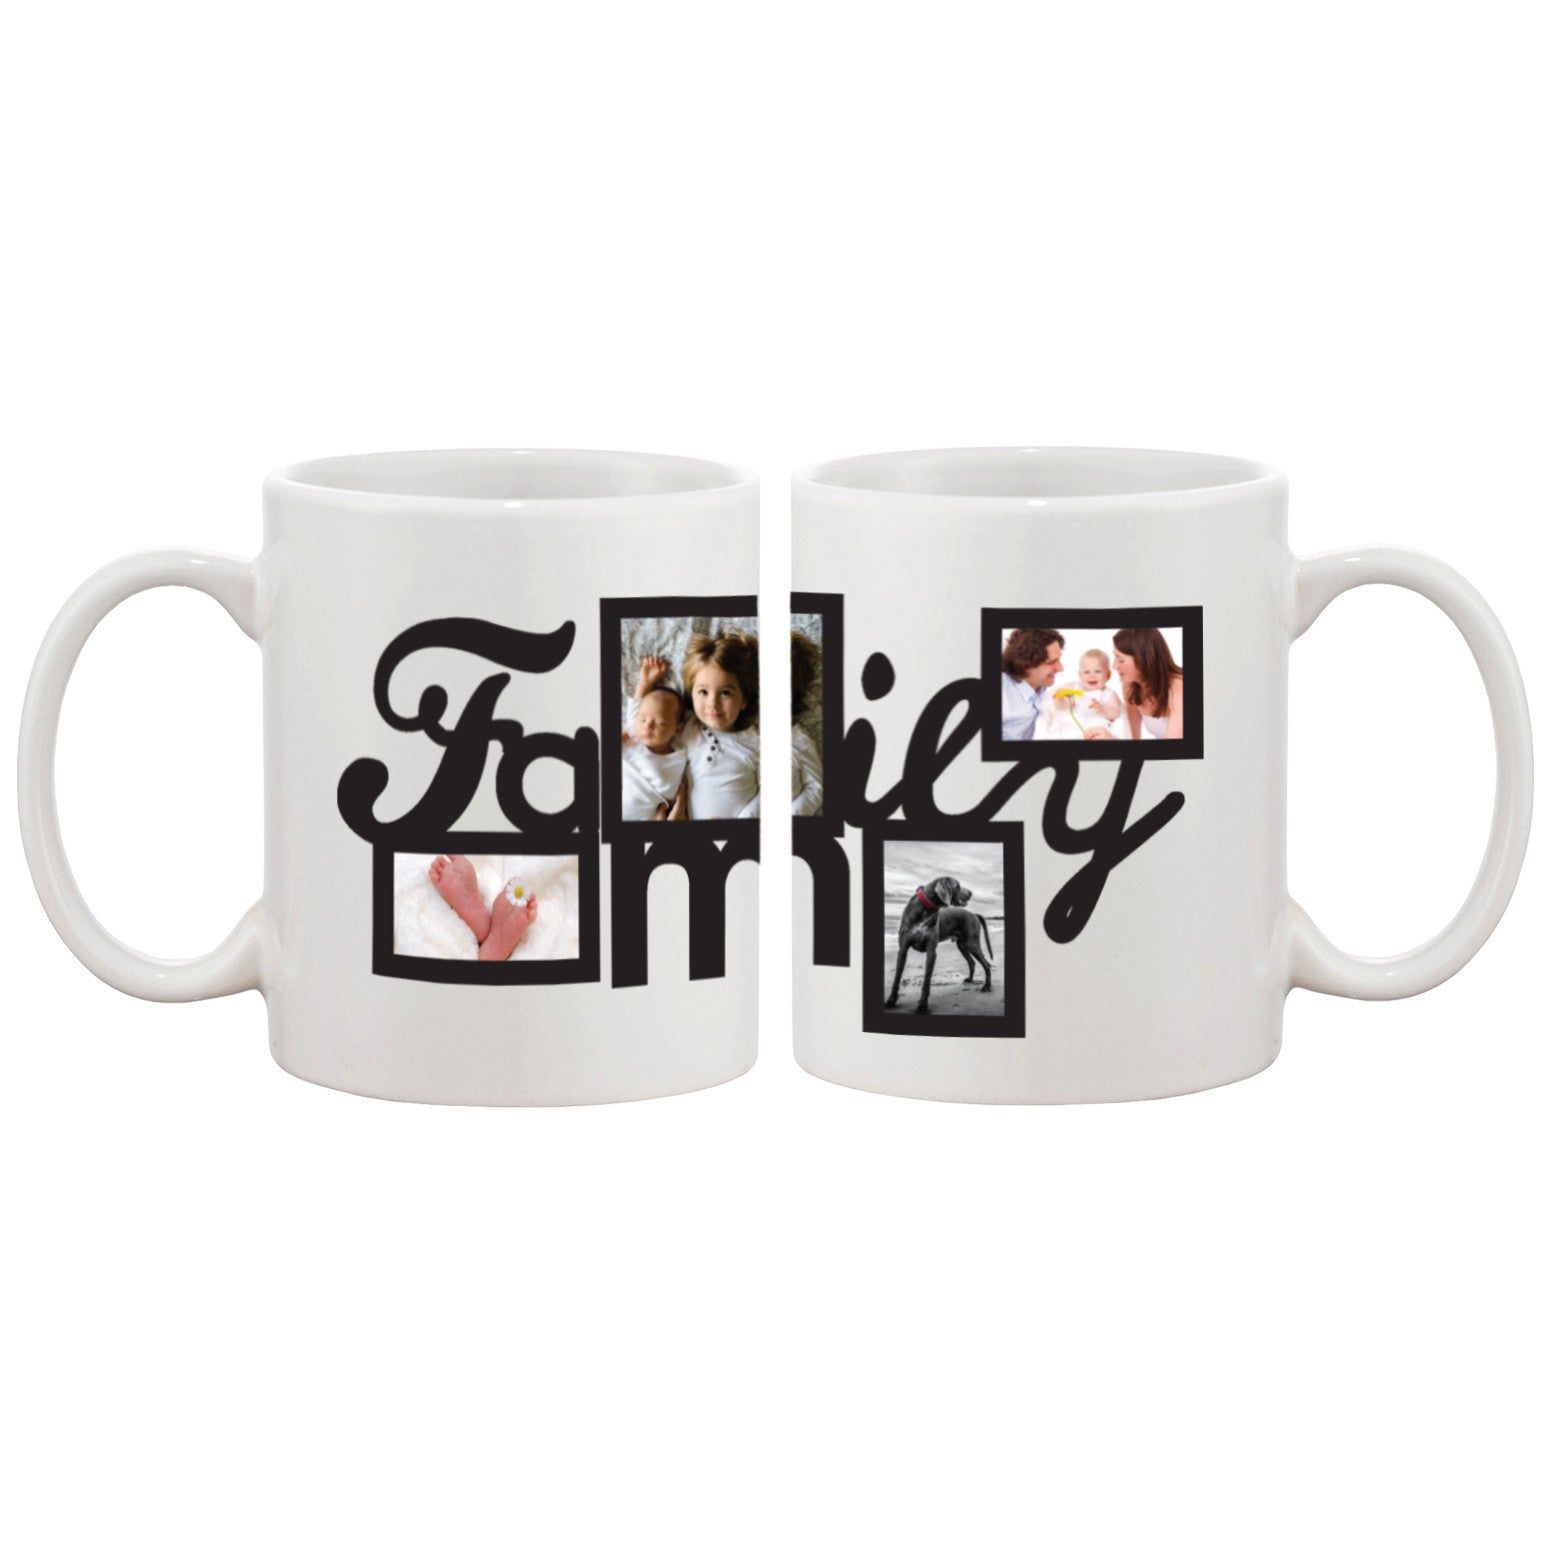 Personalized Coffee Mug For Your Own Four Pictures Best Gift Ideas For 365 In Love Matching Gifts Ideas